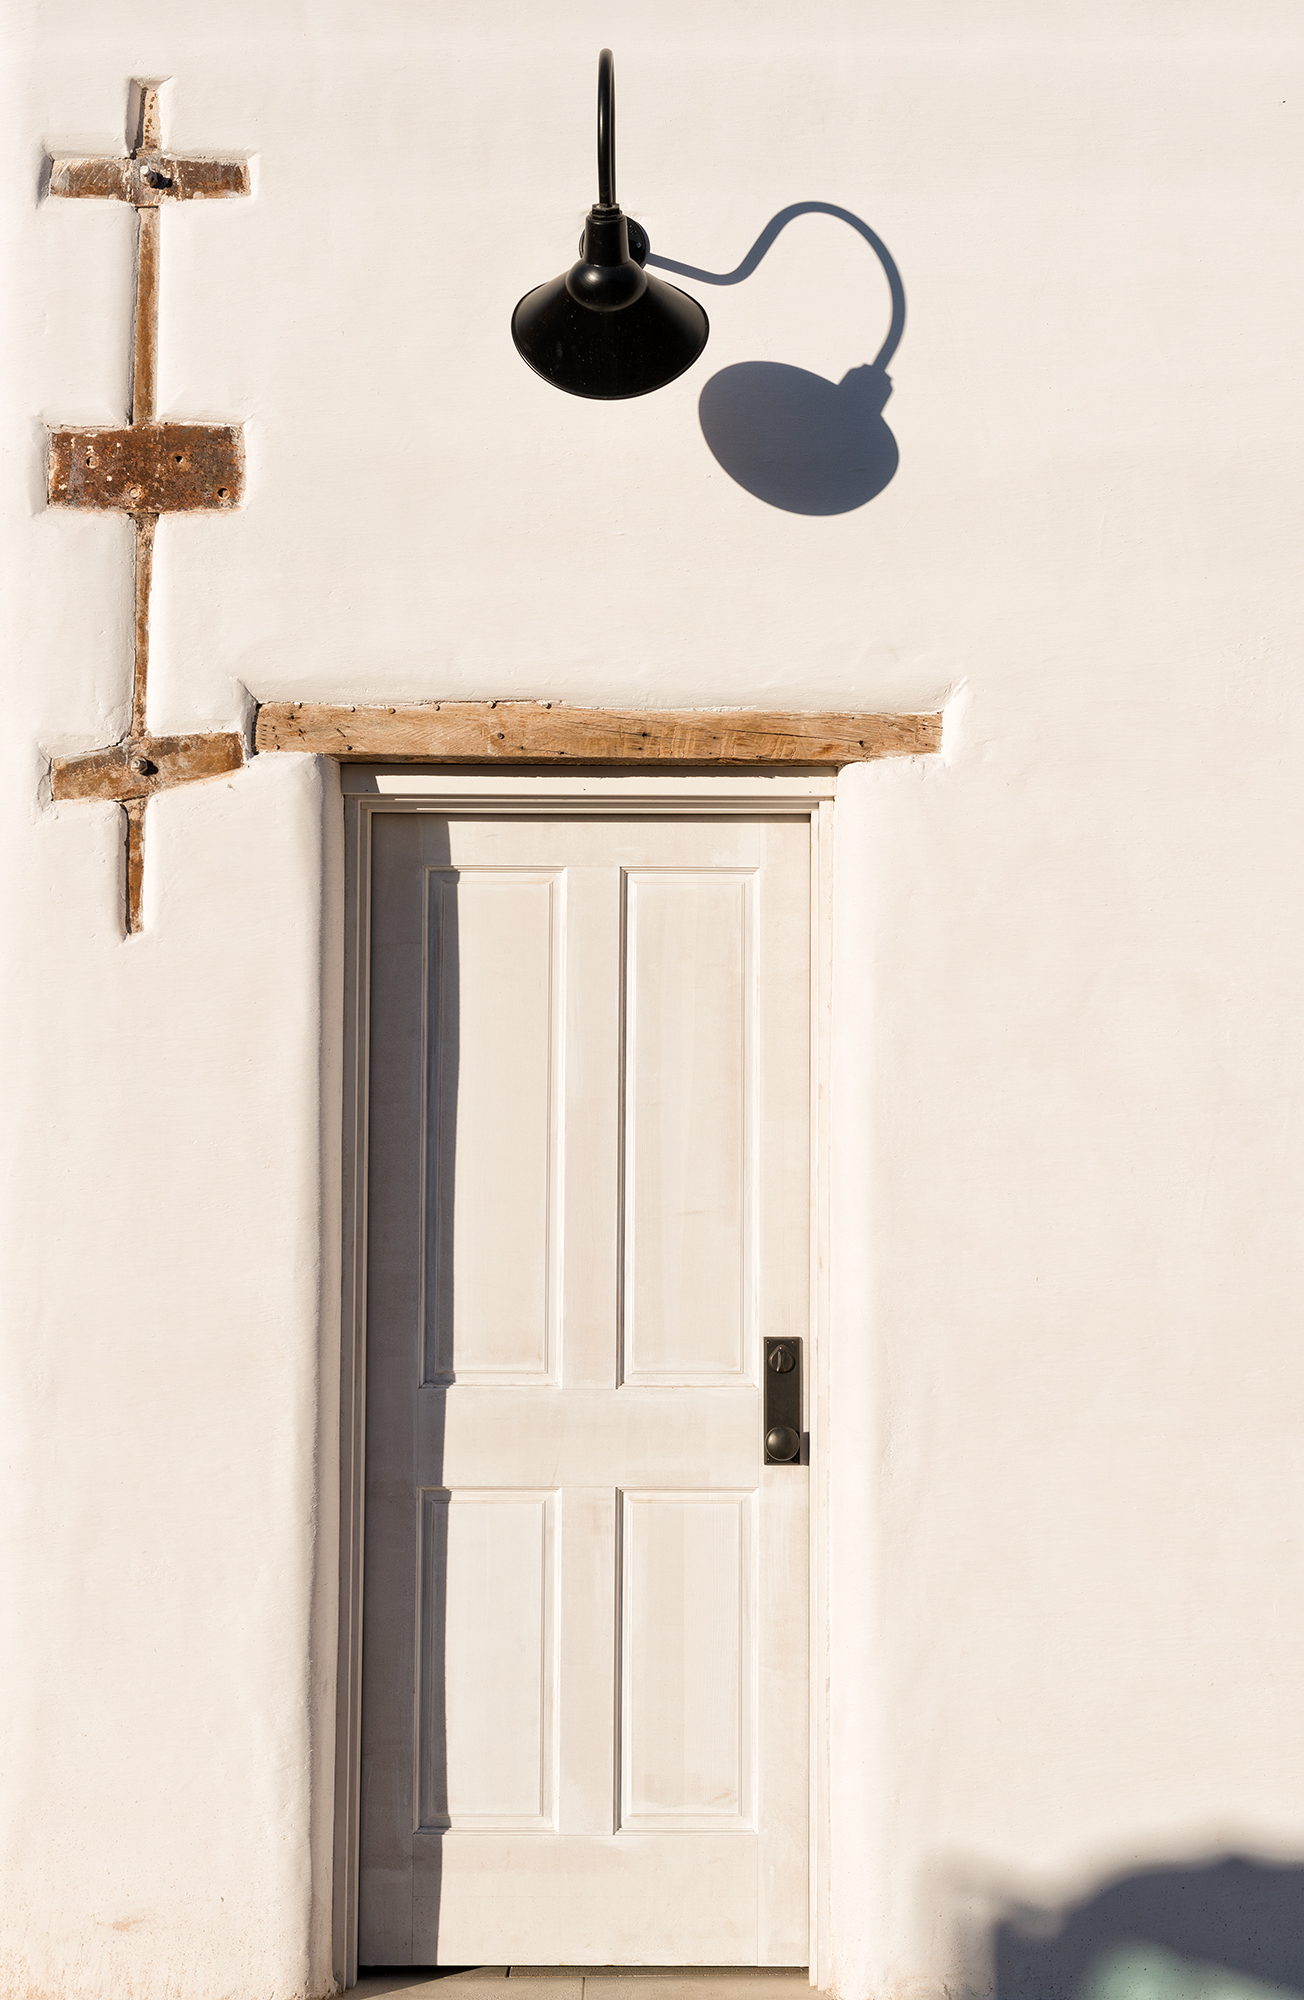 White Door. Tucson, Arizona, 2015